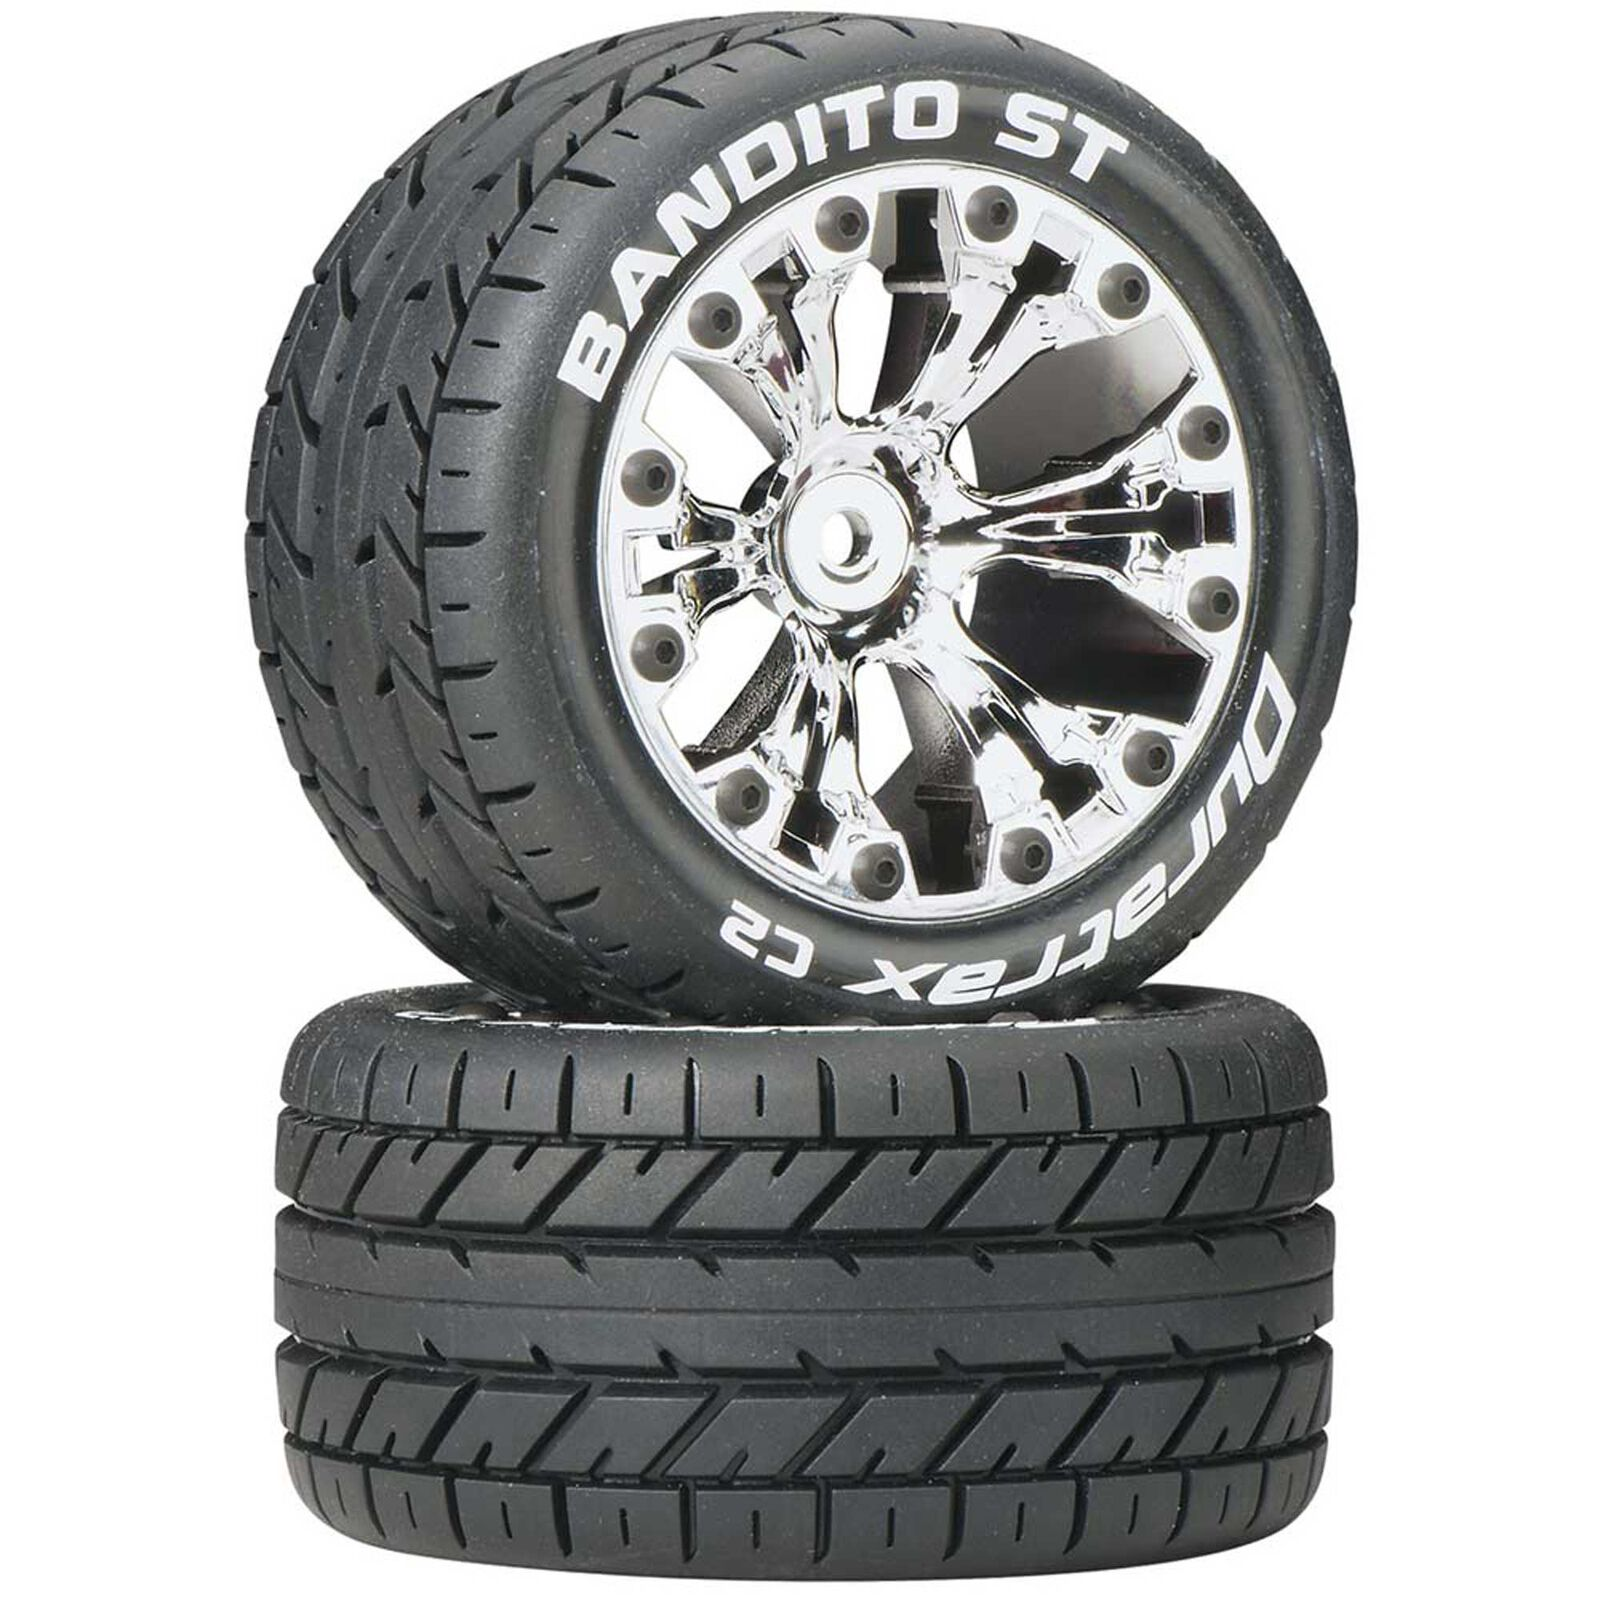 """Bandito ST 2.8"""" 2WD Mounted Rear C2 Tires, Chrome (2)"""